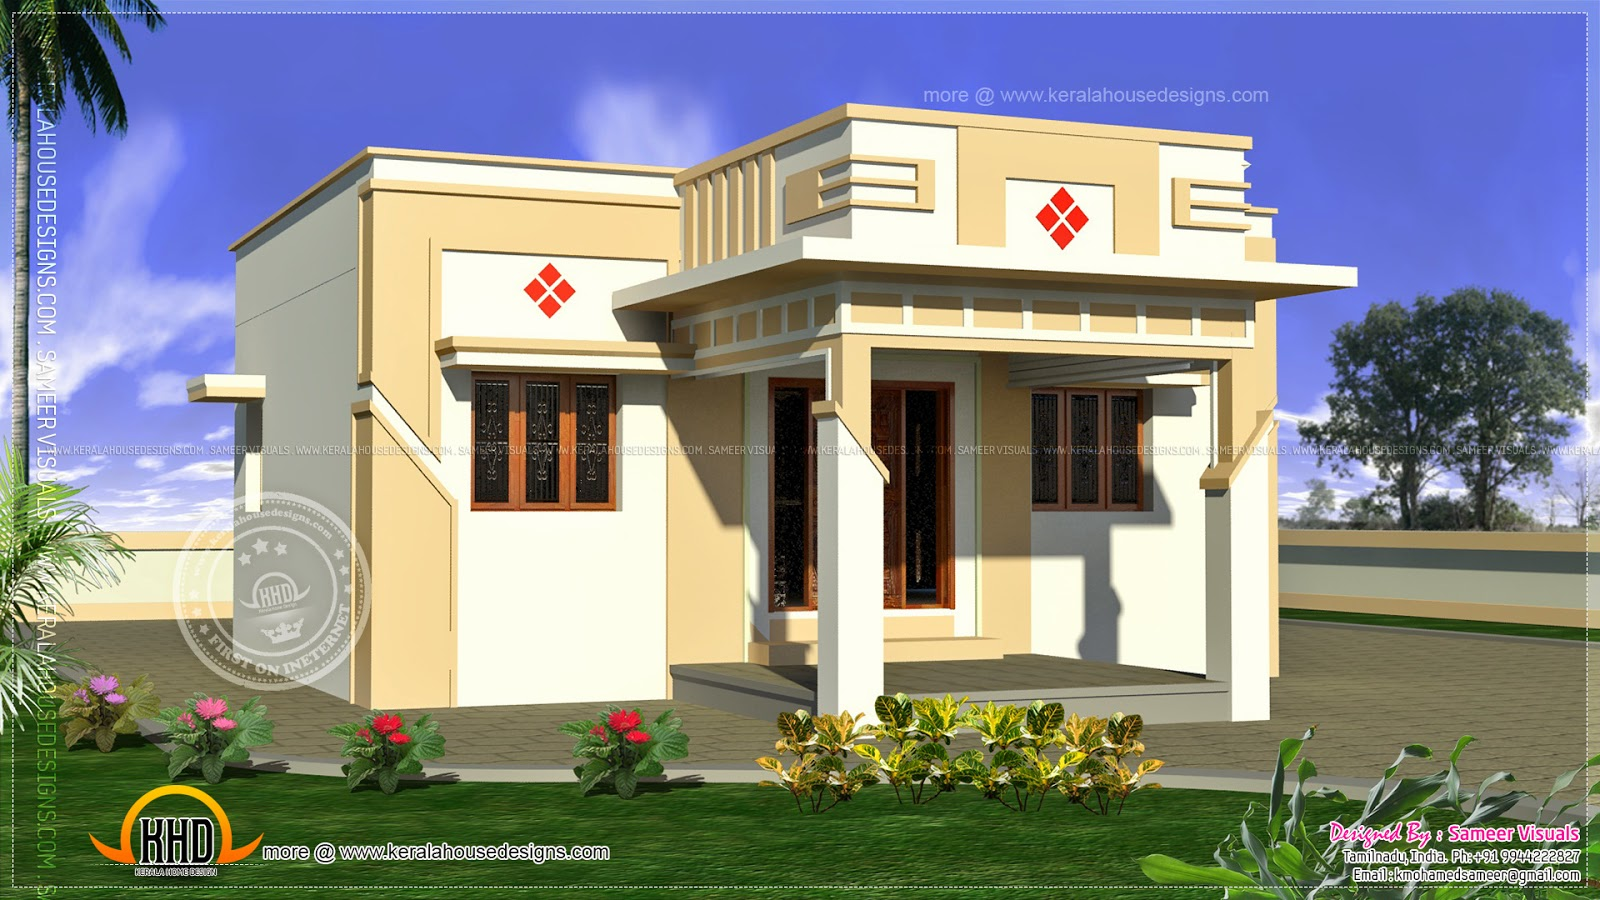 Low cost tamilnadu house kerala home design and floor plans for Kerala house construction plans